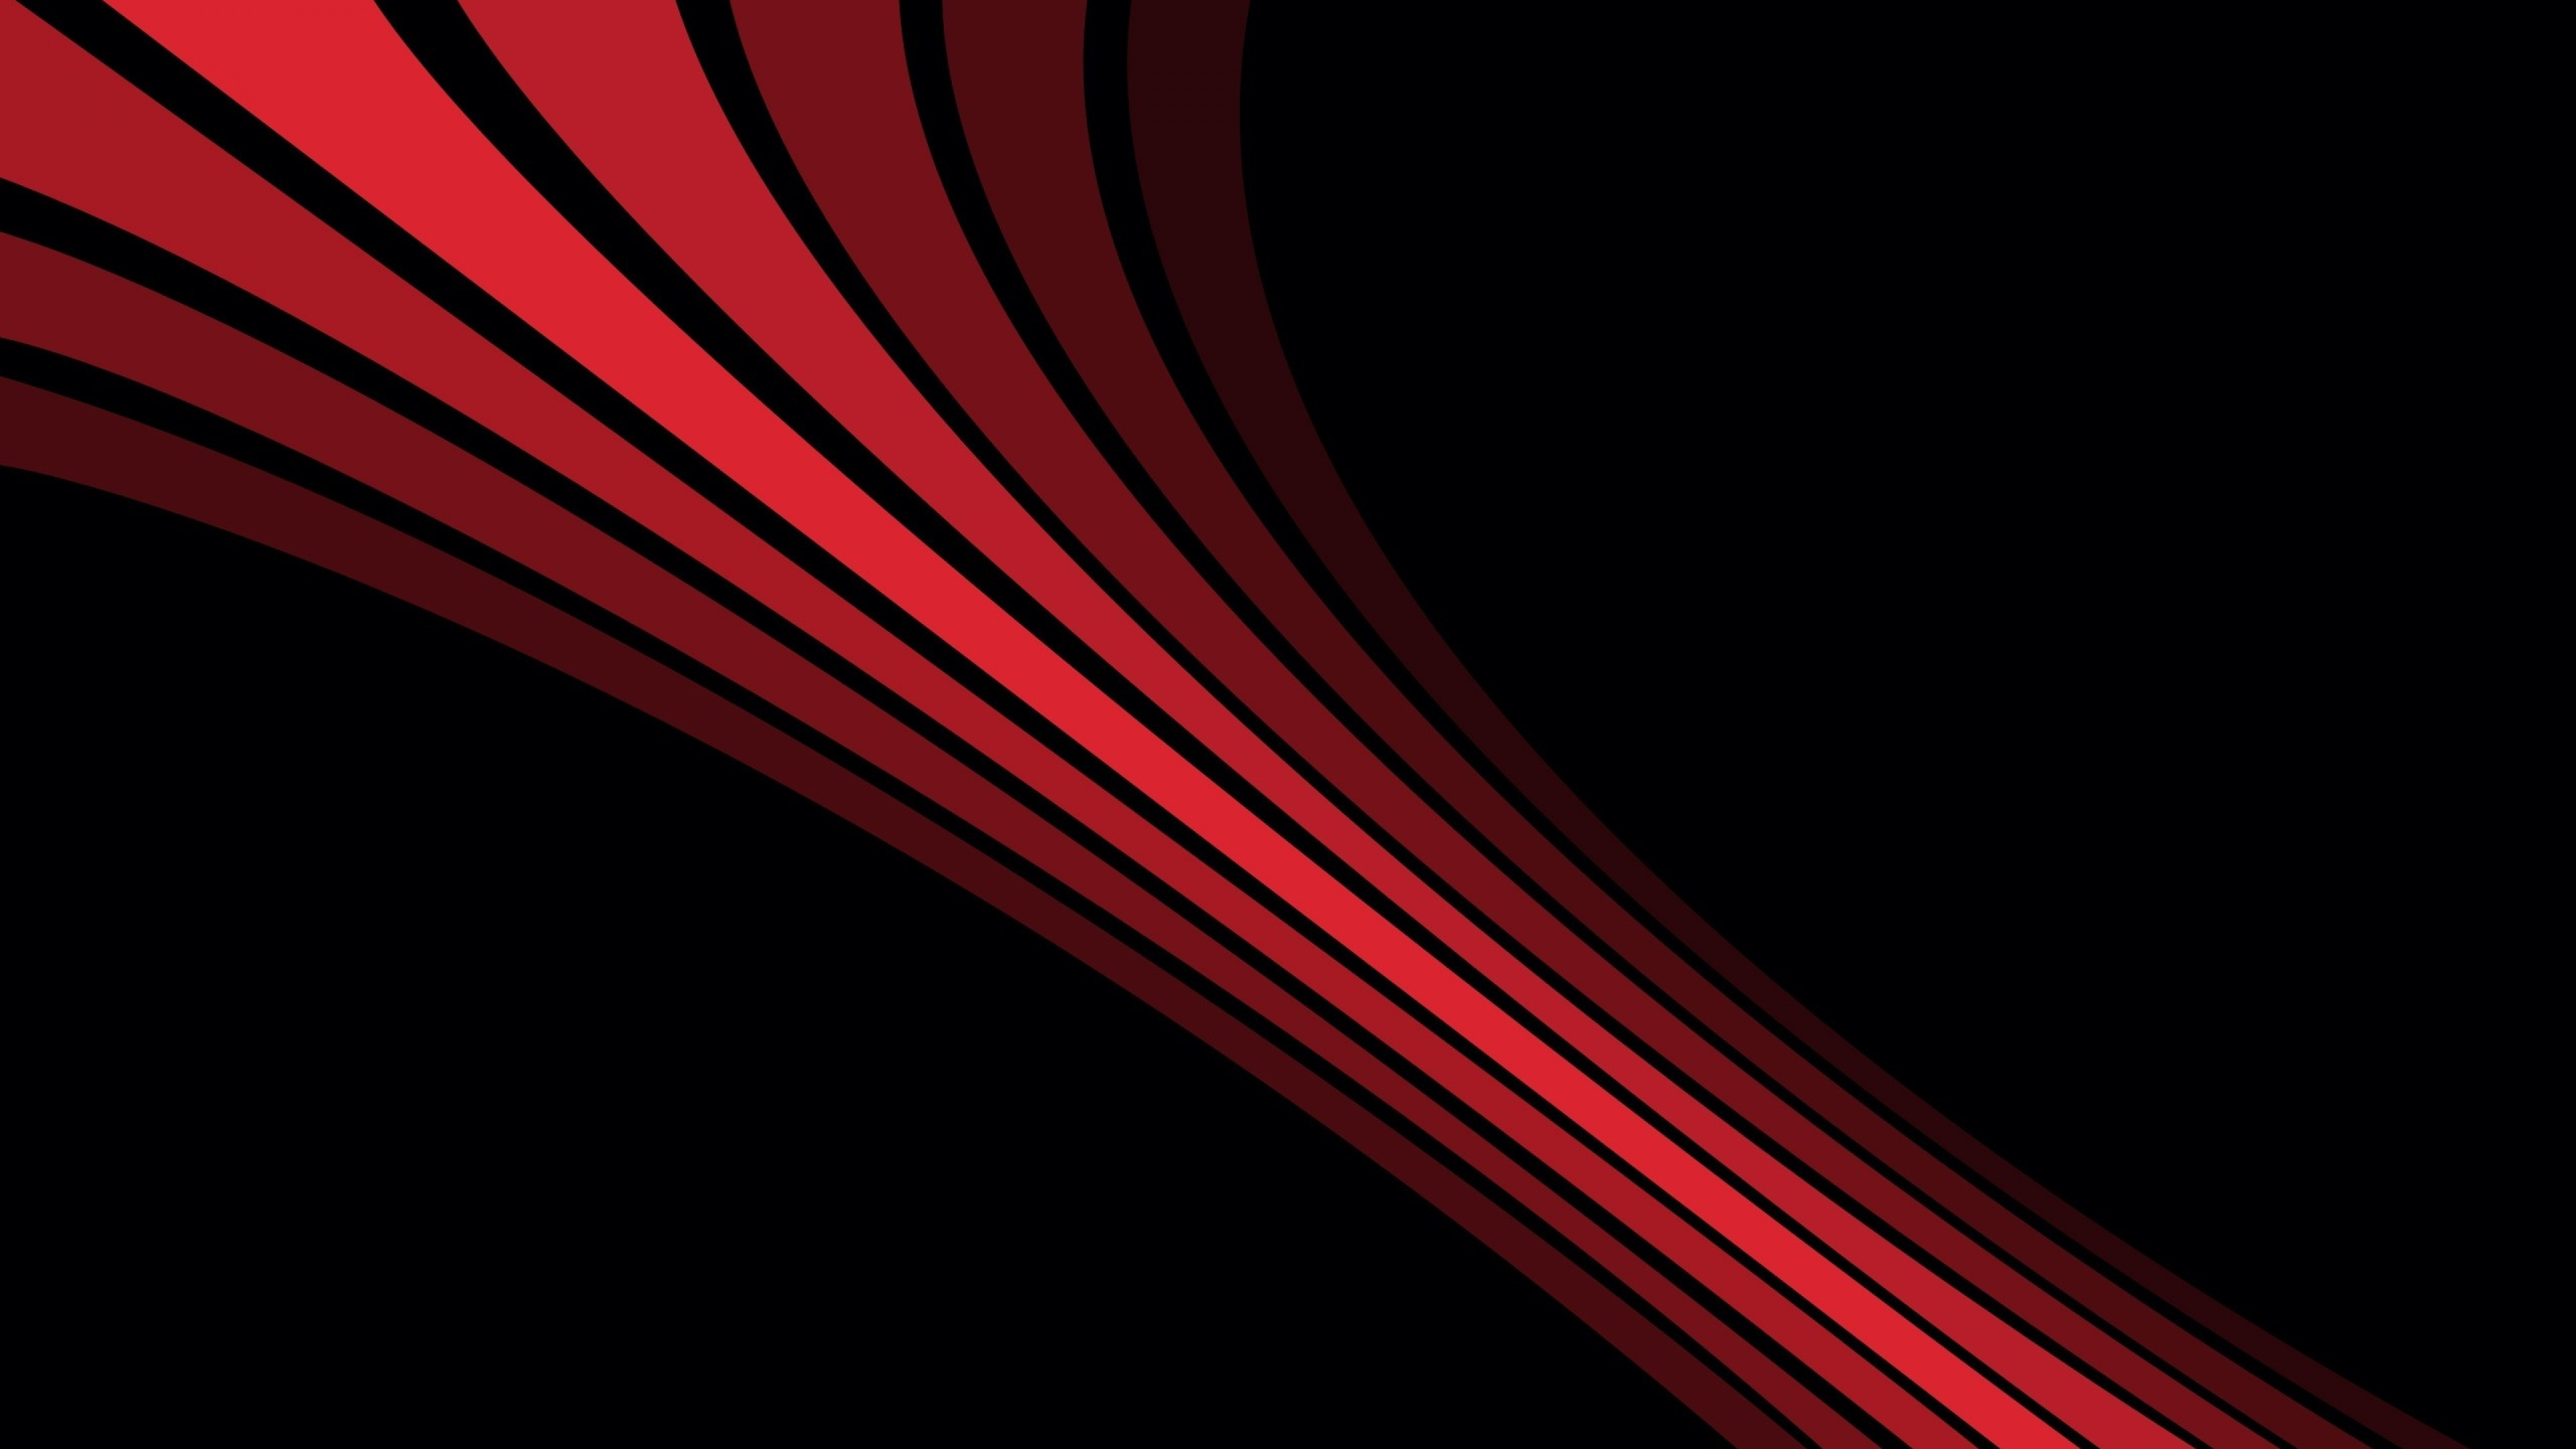 Red And Black 4k Wallpaper 53 Images